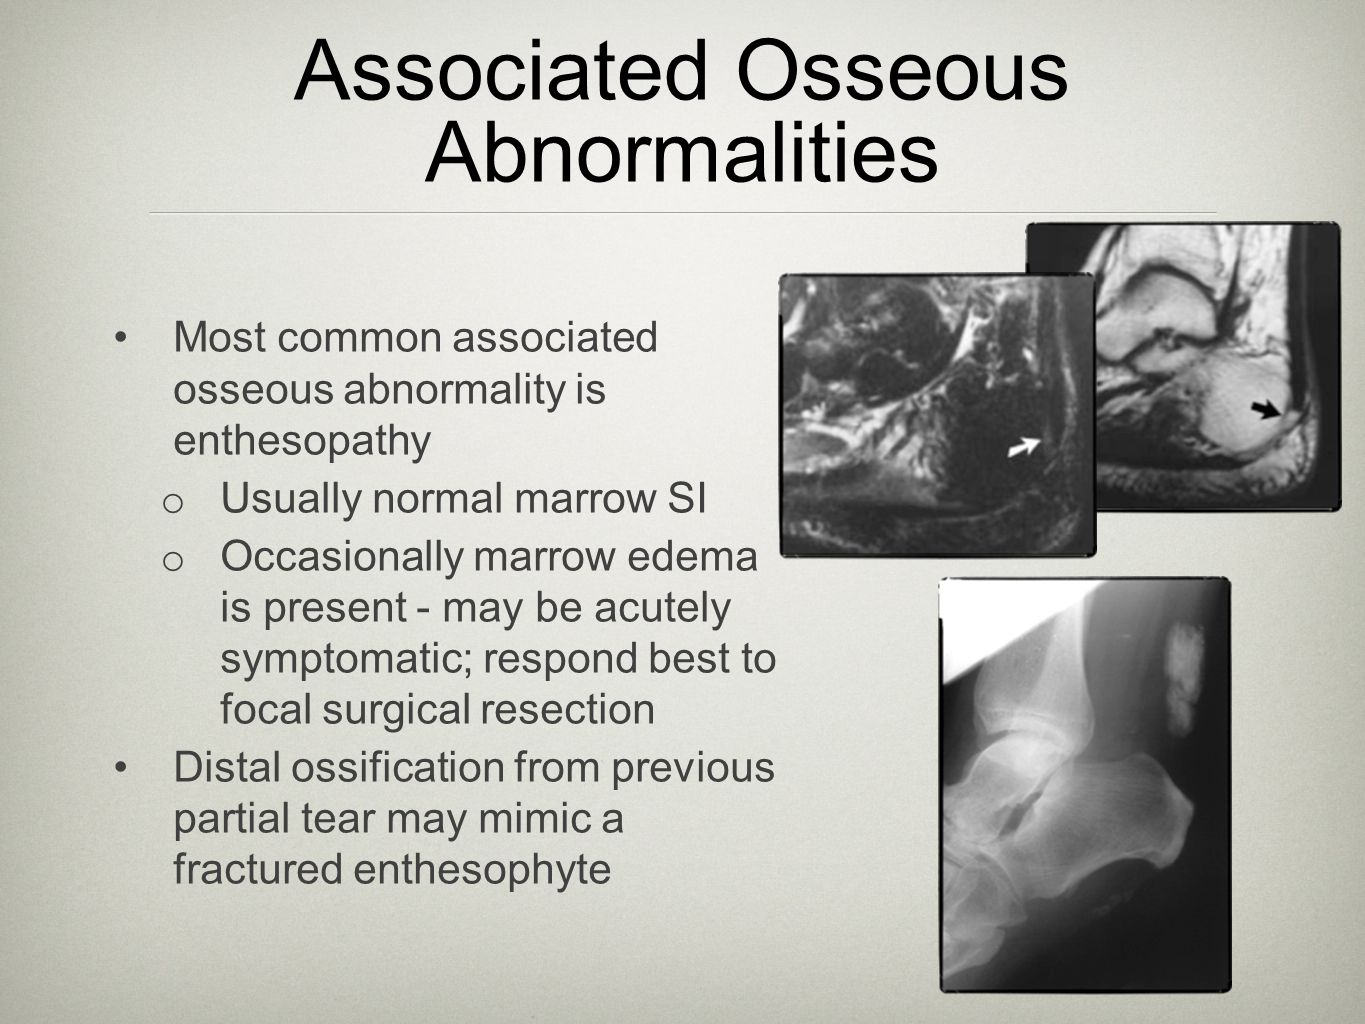 Associated Osseous Abnormalities Most common associated osseous abnormality is enthesopathy o Usually normal marrow SI o Occasionally marrow edema is